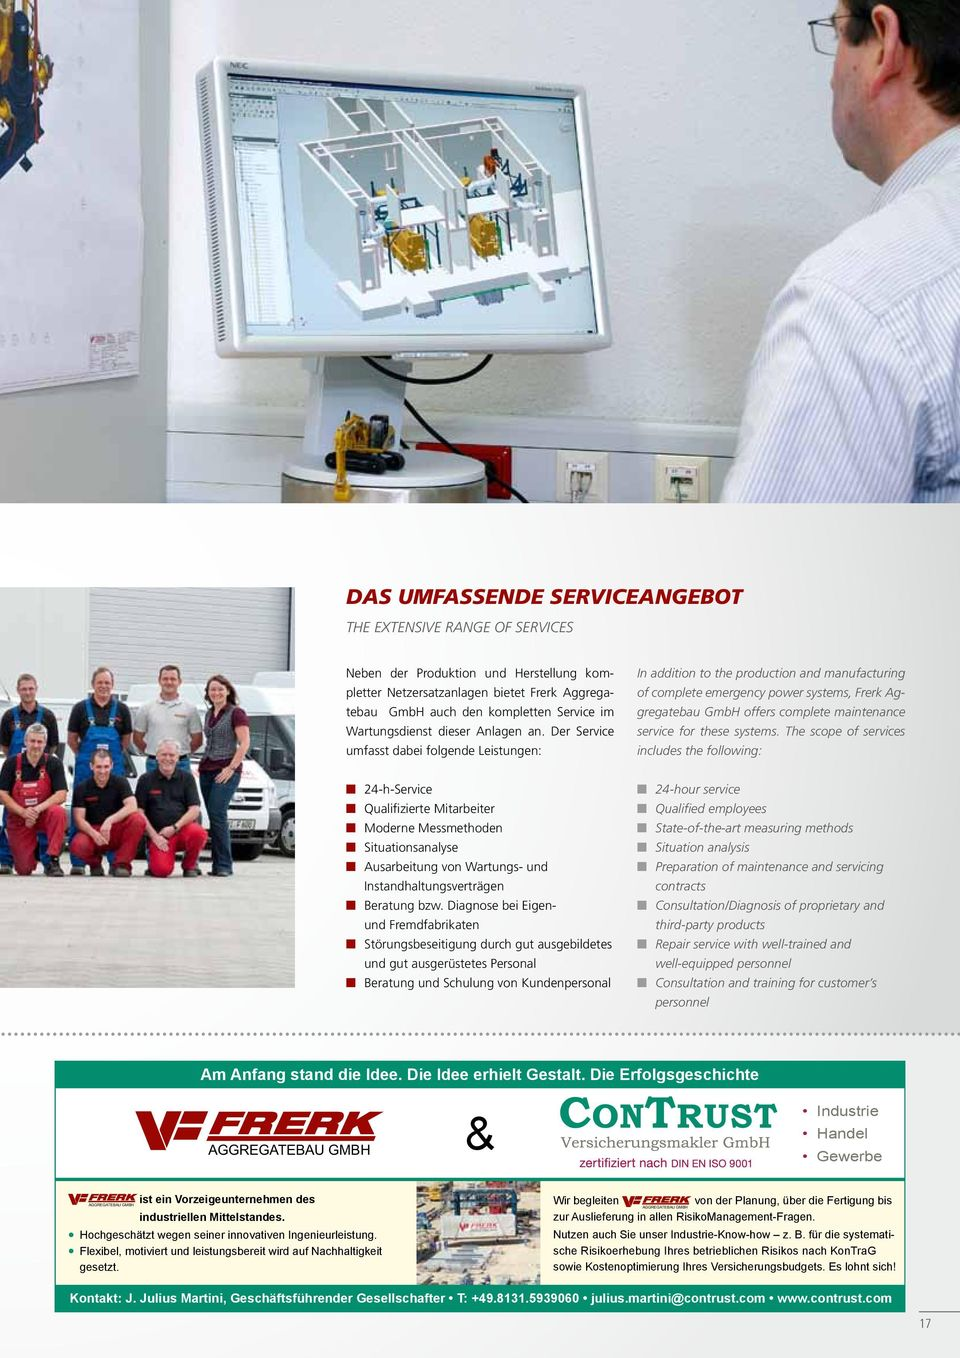 Der Service umfasst dabei folgende Leistungen: In addition to the production and manufacturing of complete emergency power systems, Frerk Aggregatebau GmbH offers complete maintenance service for